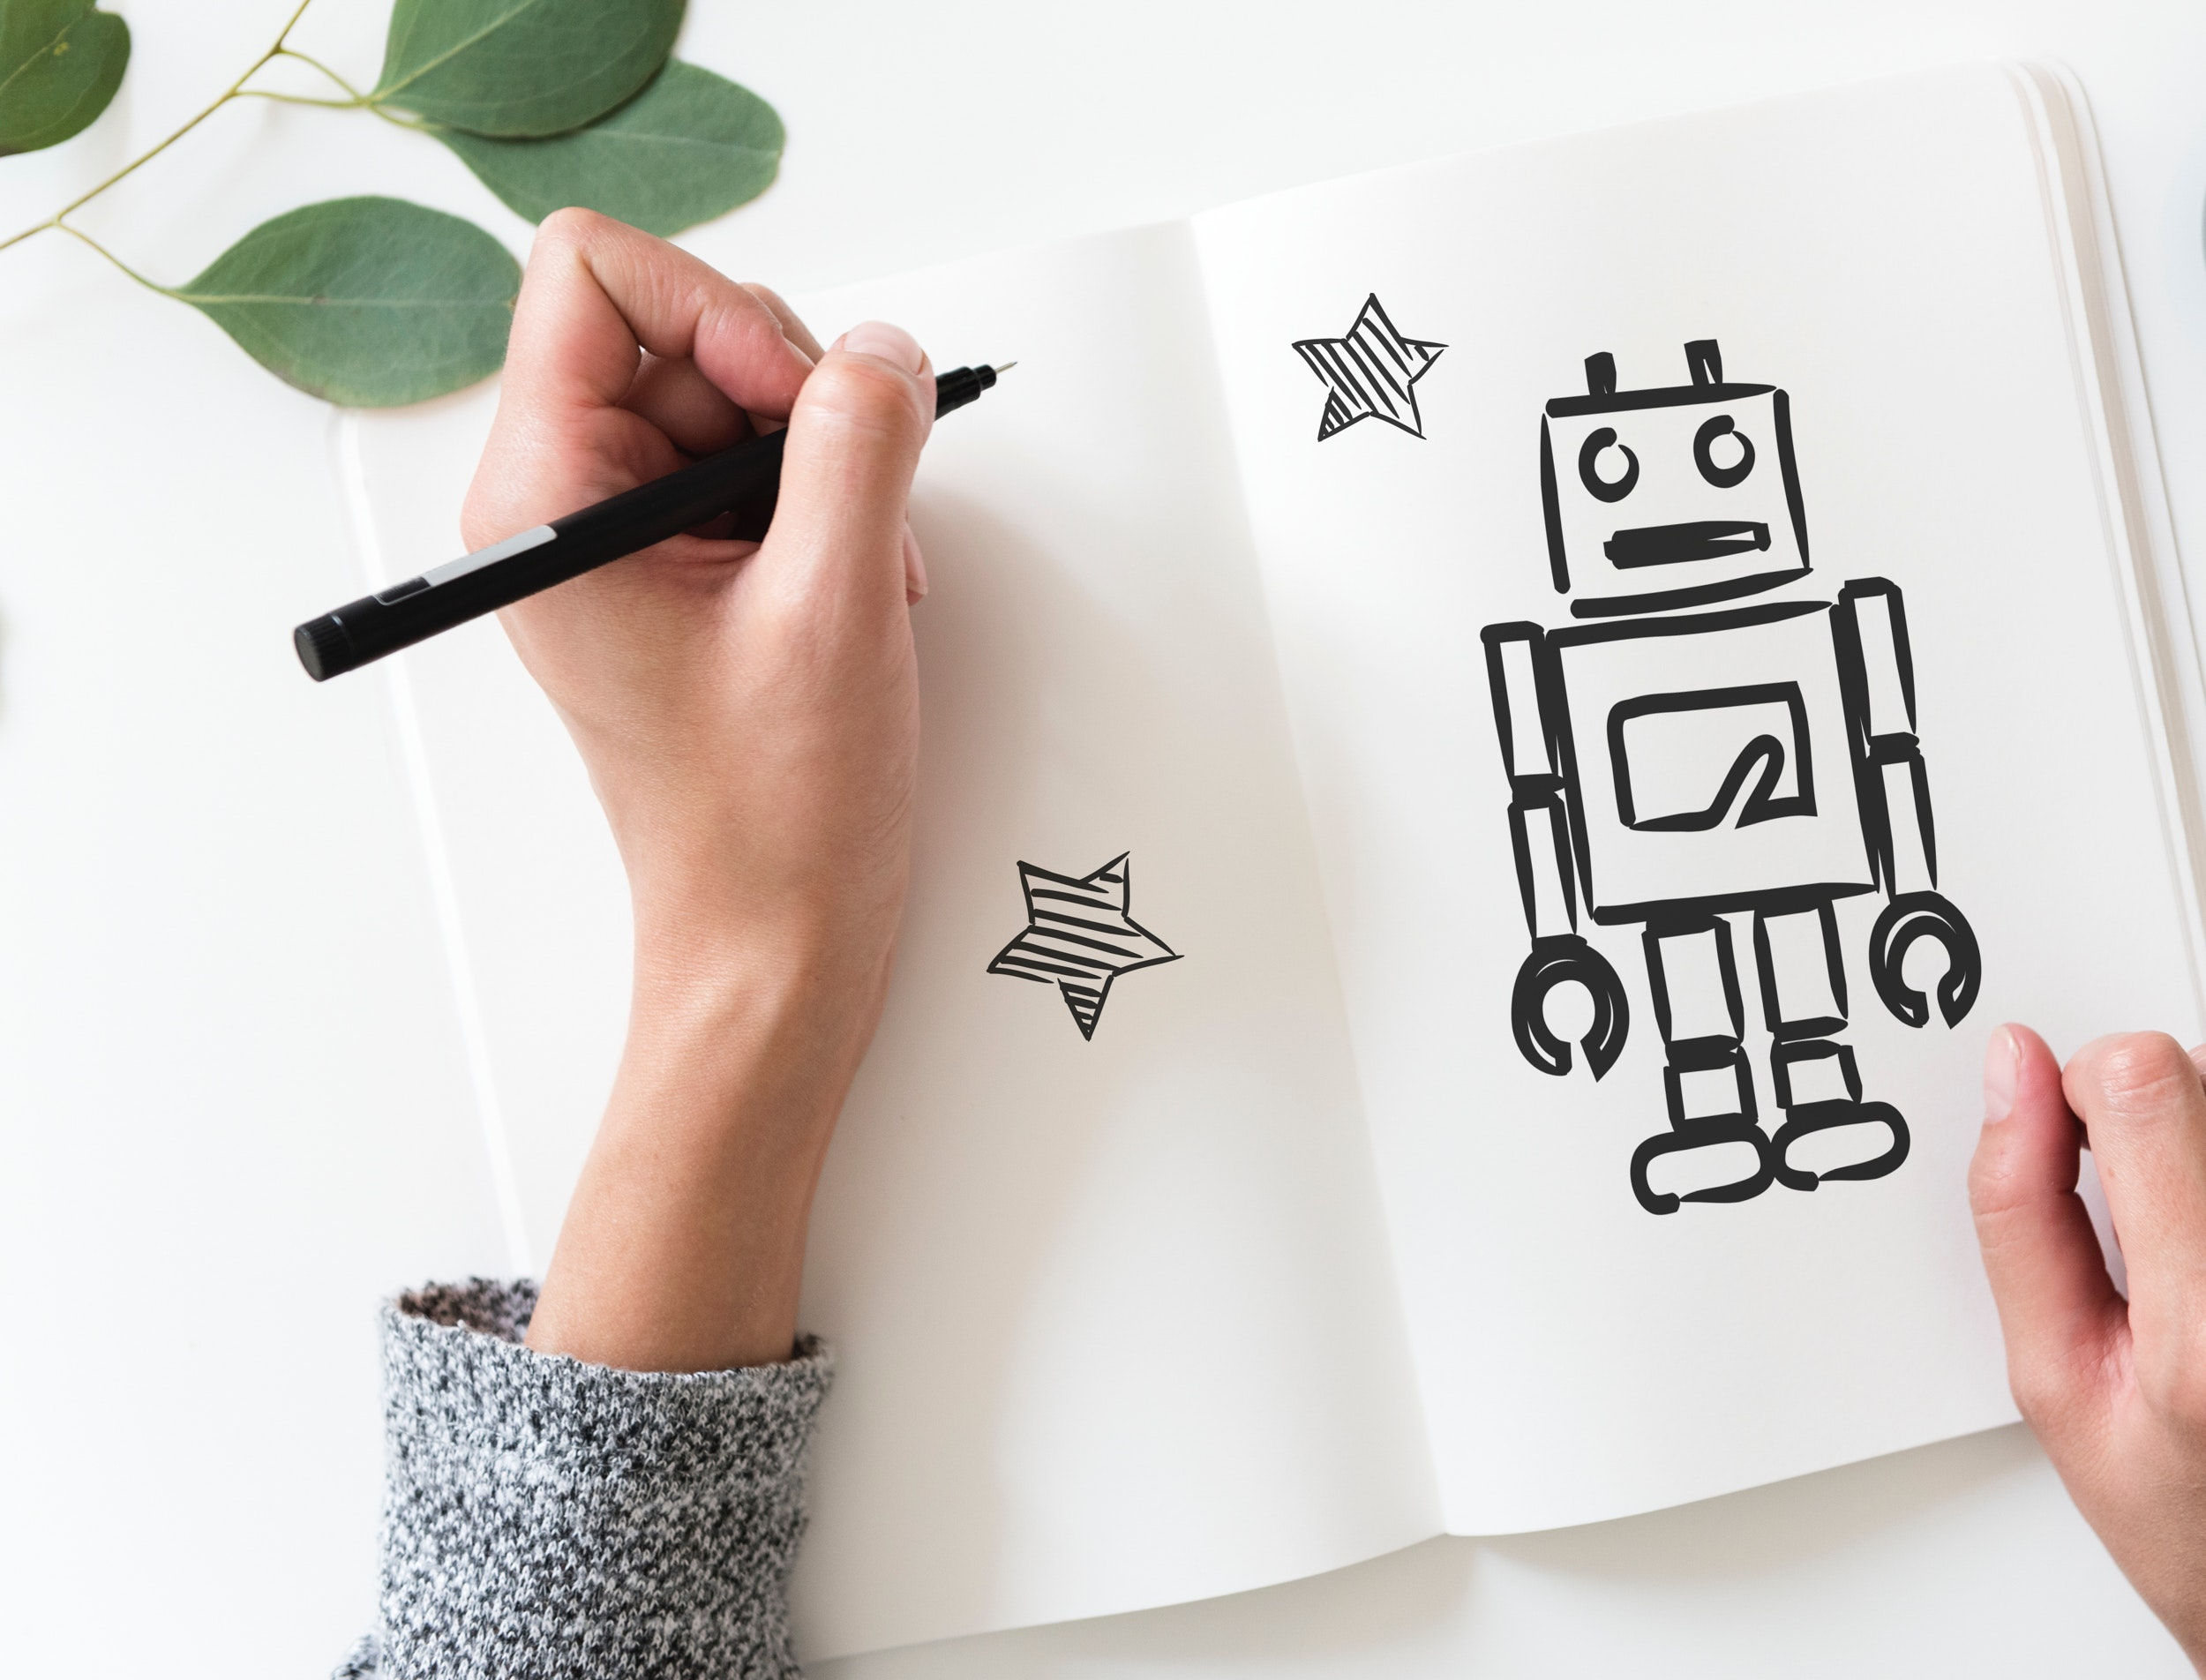 3. It works on autopilot. - Once campaigns are created, they run in the background continually — without any extra work from you. It's like having an email robot working 24/7 to bring in more revenue. 🤖